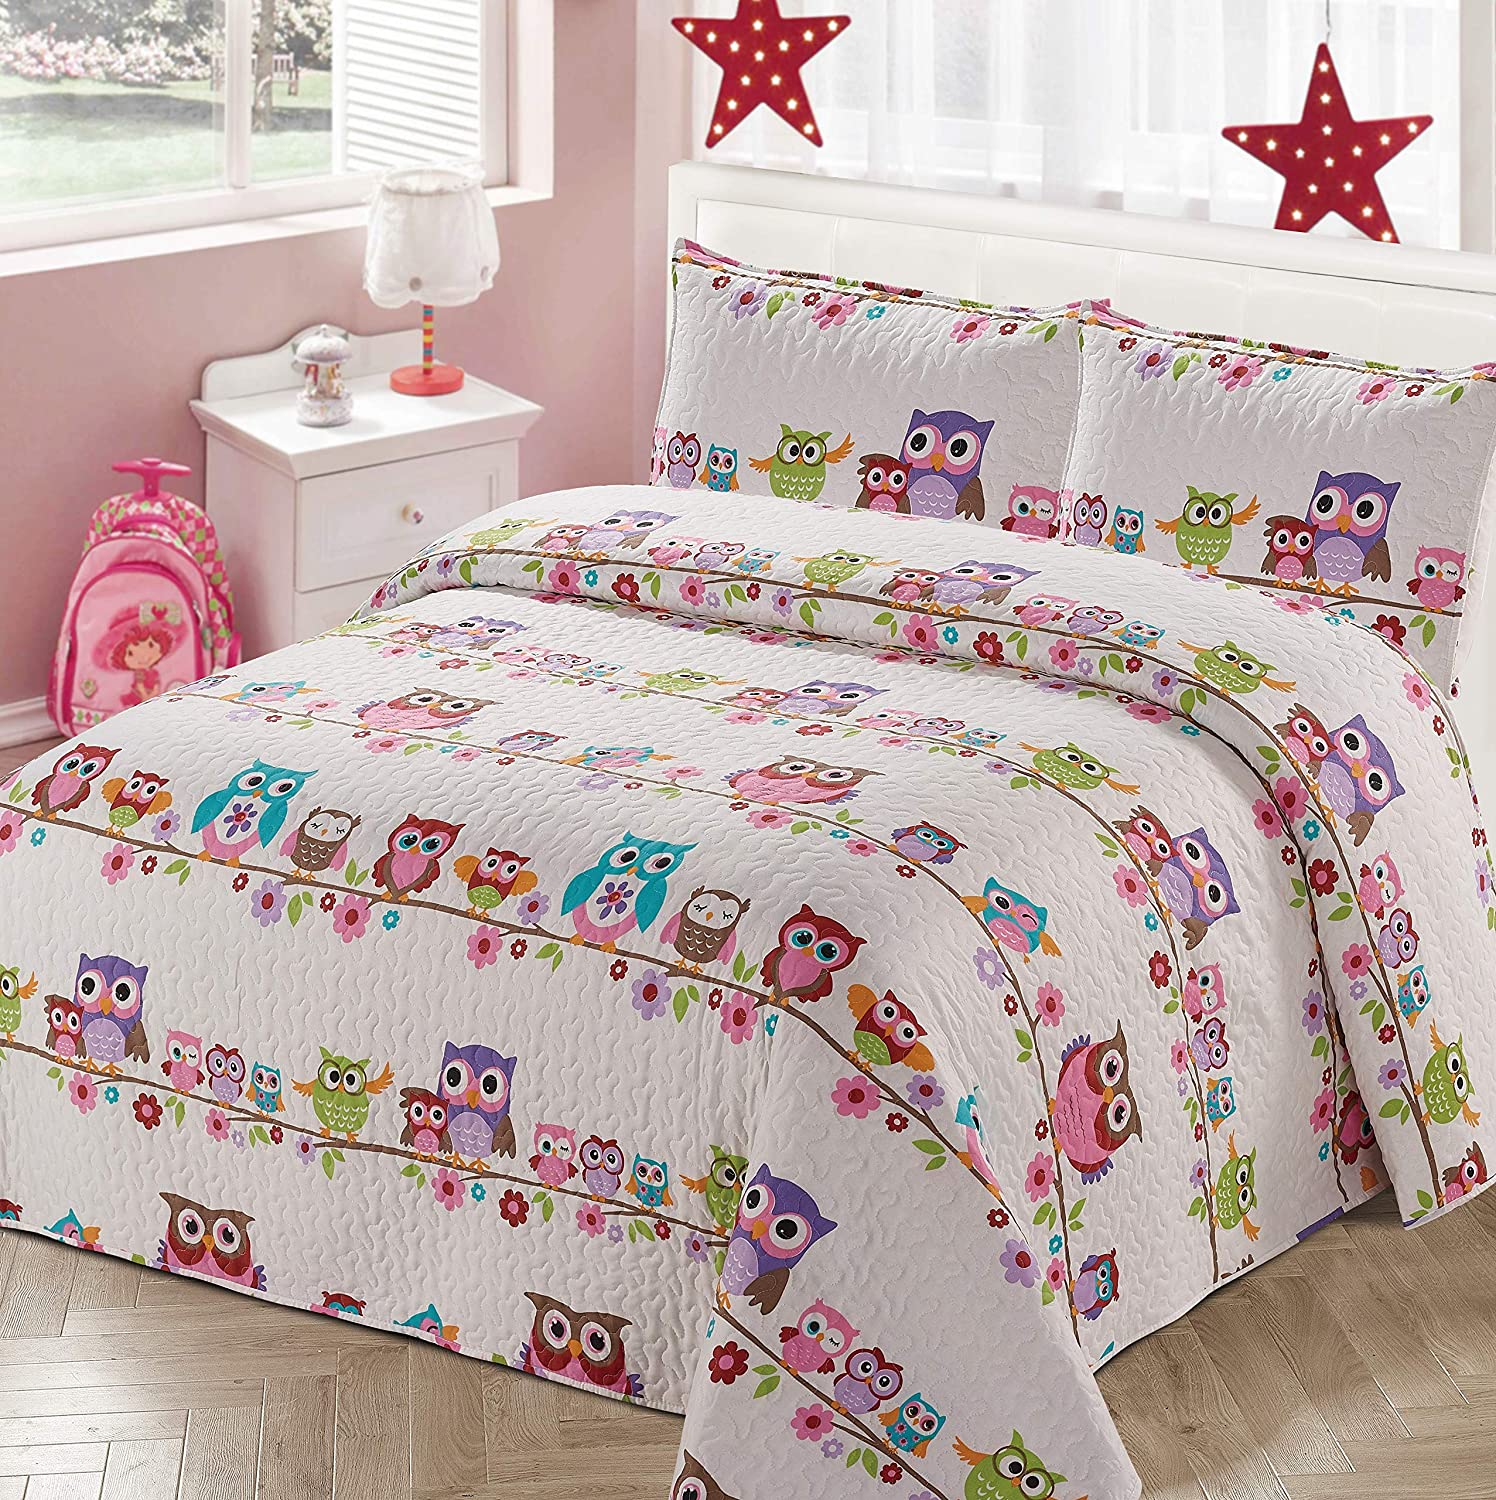 Better Home Style White Pink Purple and Turquoise Blue Kids/Teenage/Girls Coverlet Bedspread Quilt Set with Pillowcases Floral Night Owls on The Branch Imagery # 2018101 (Queen/Full)